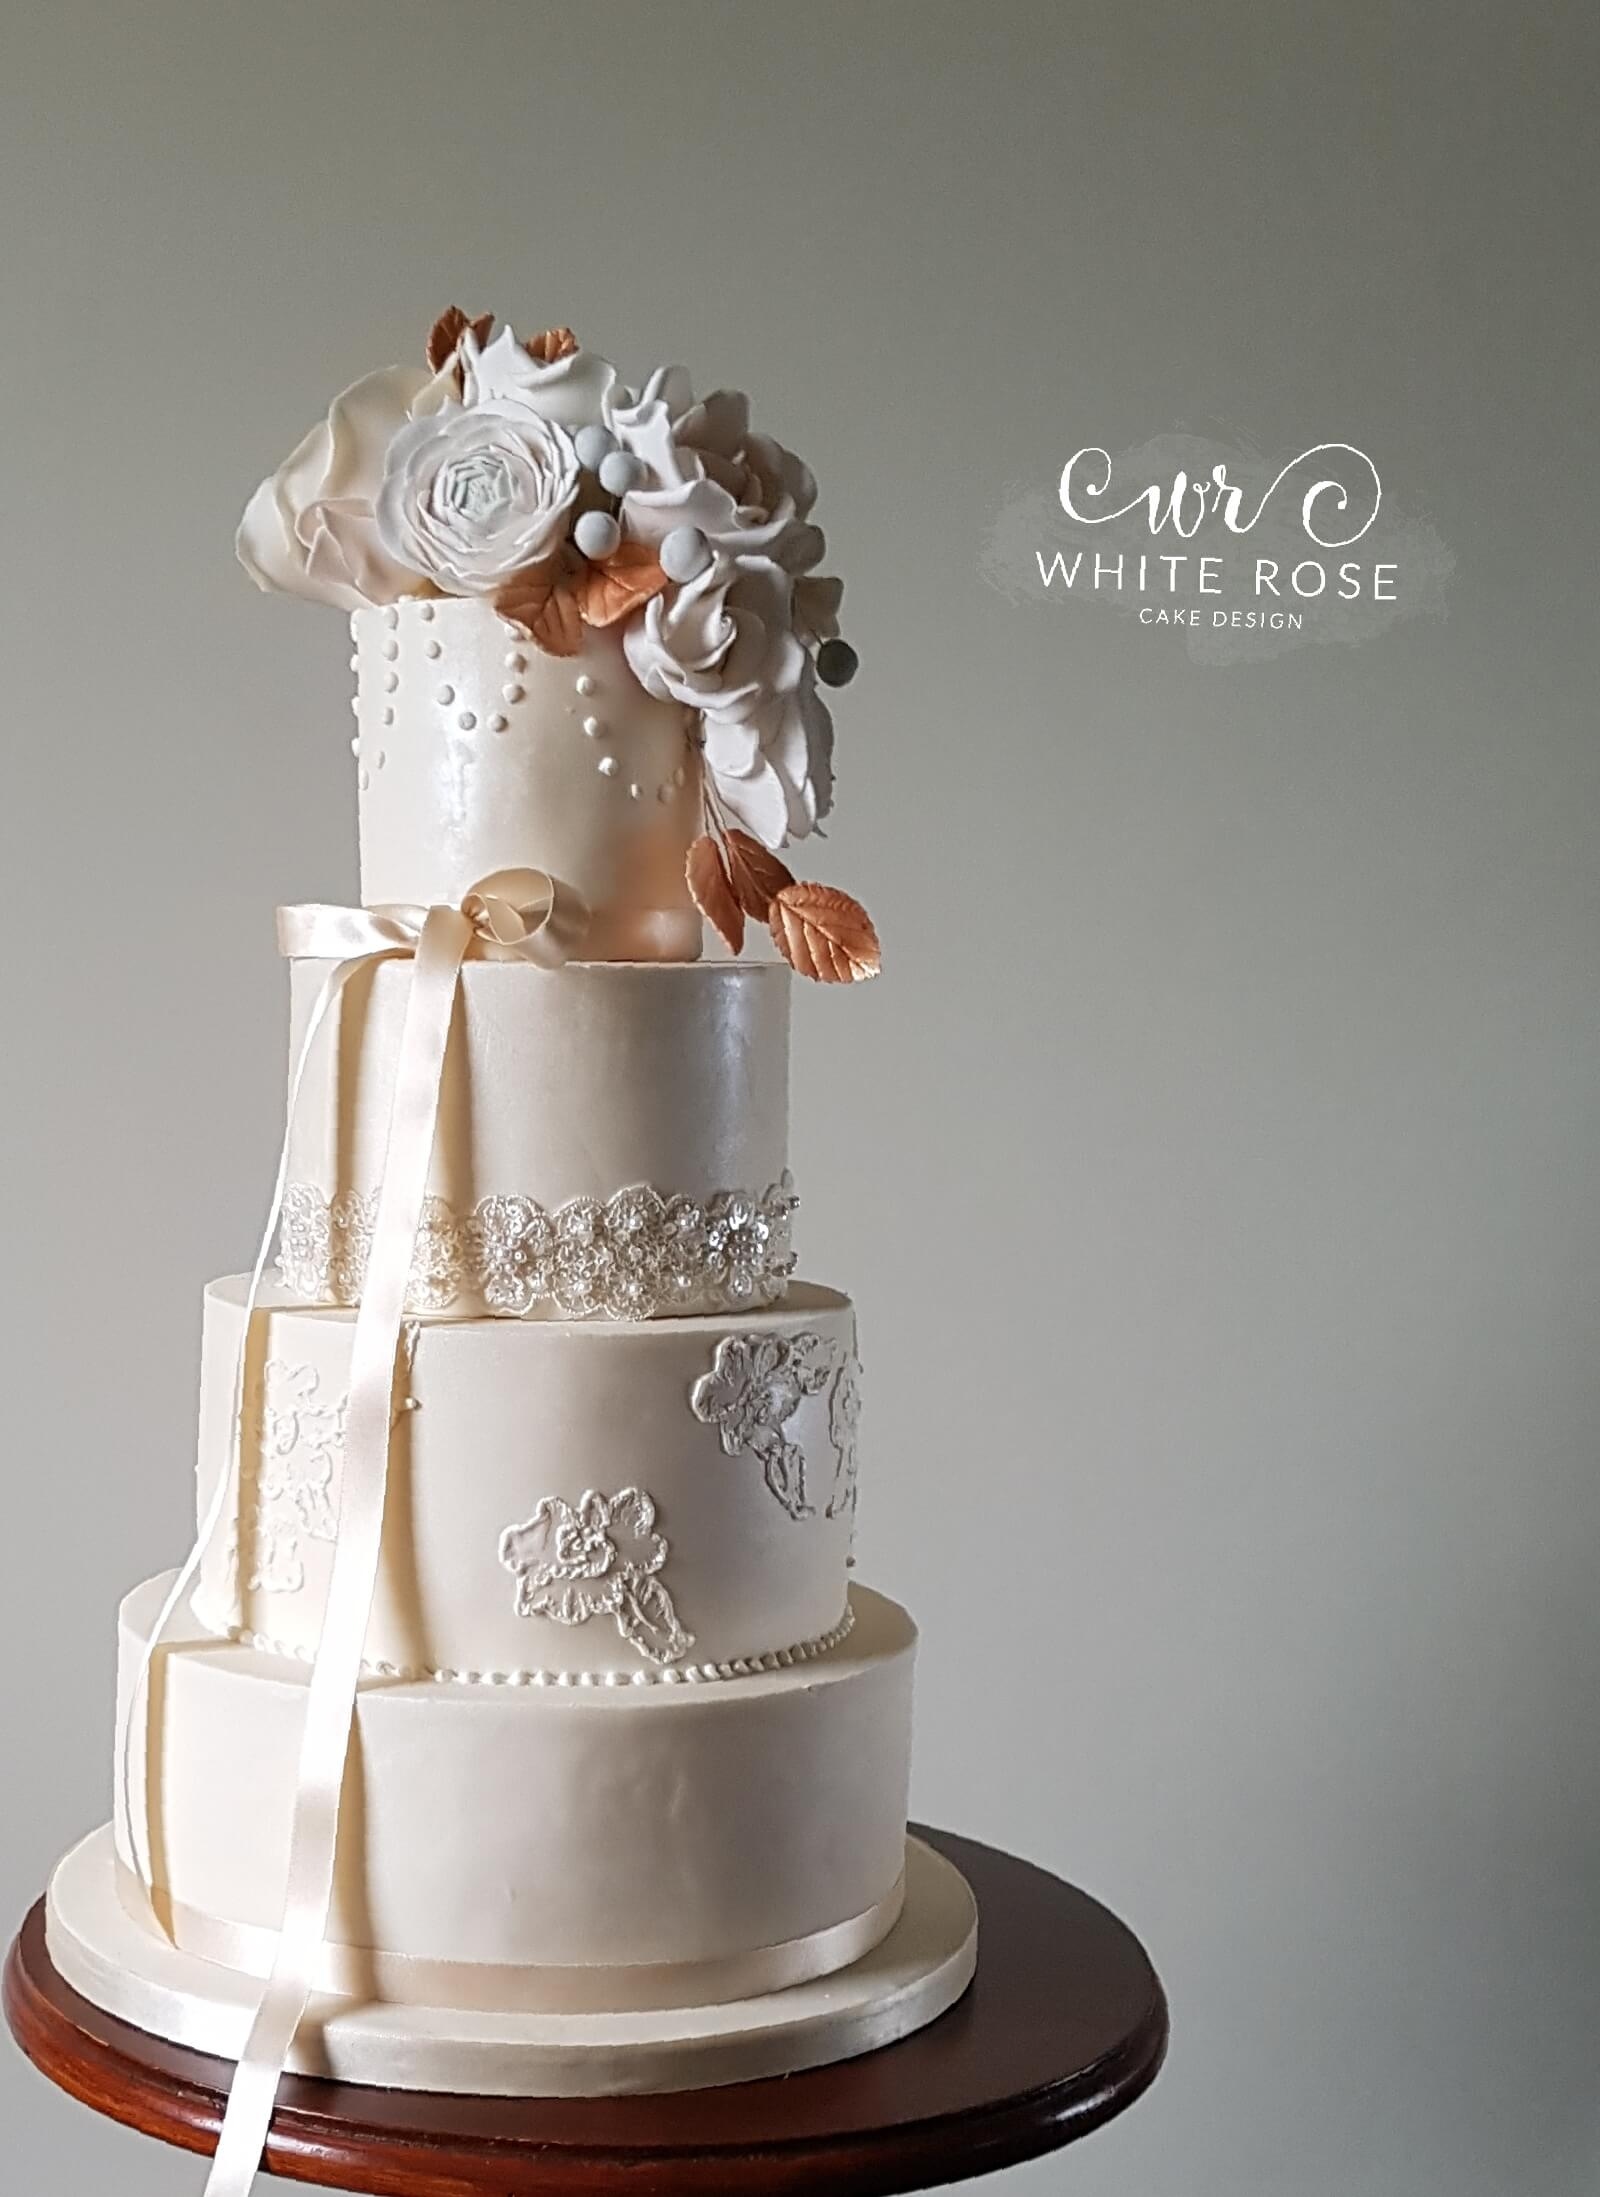 Lace, Copper and Blush Pink Roses Four Tier Wedding Cake by White Rose Cake Design, Cake Maker in Holmfirth, Huddersfield West Yorkshire